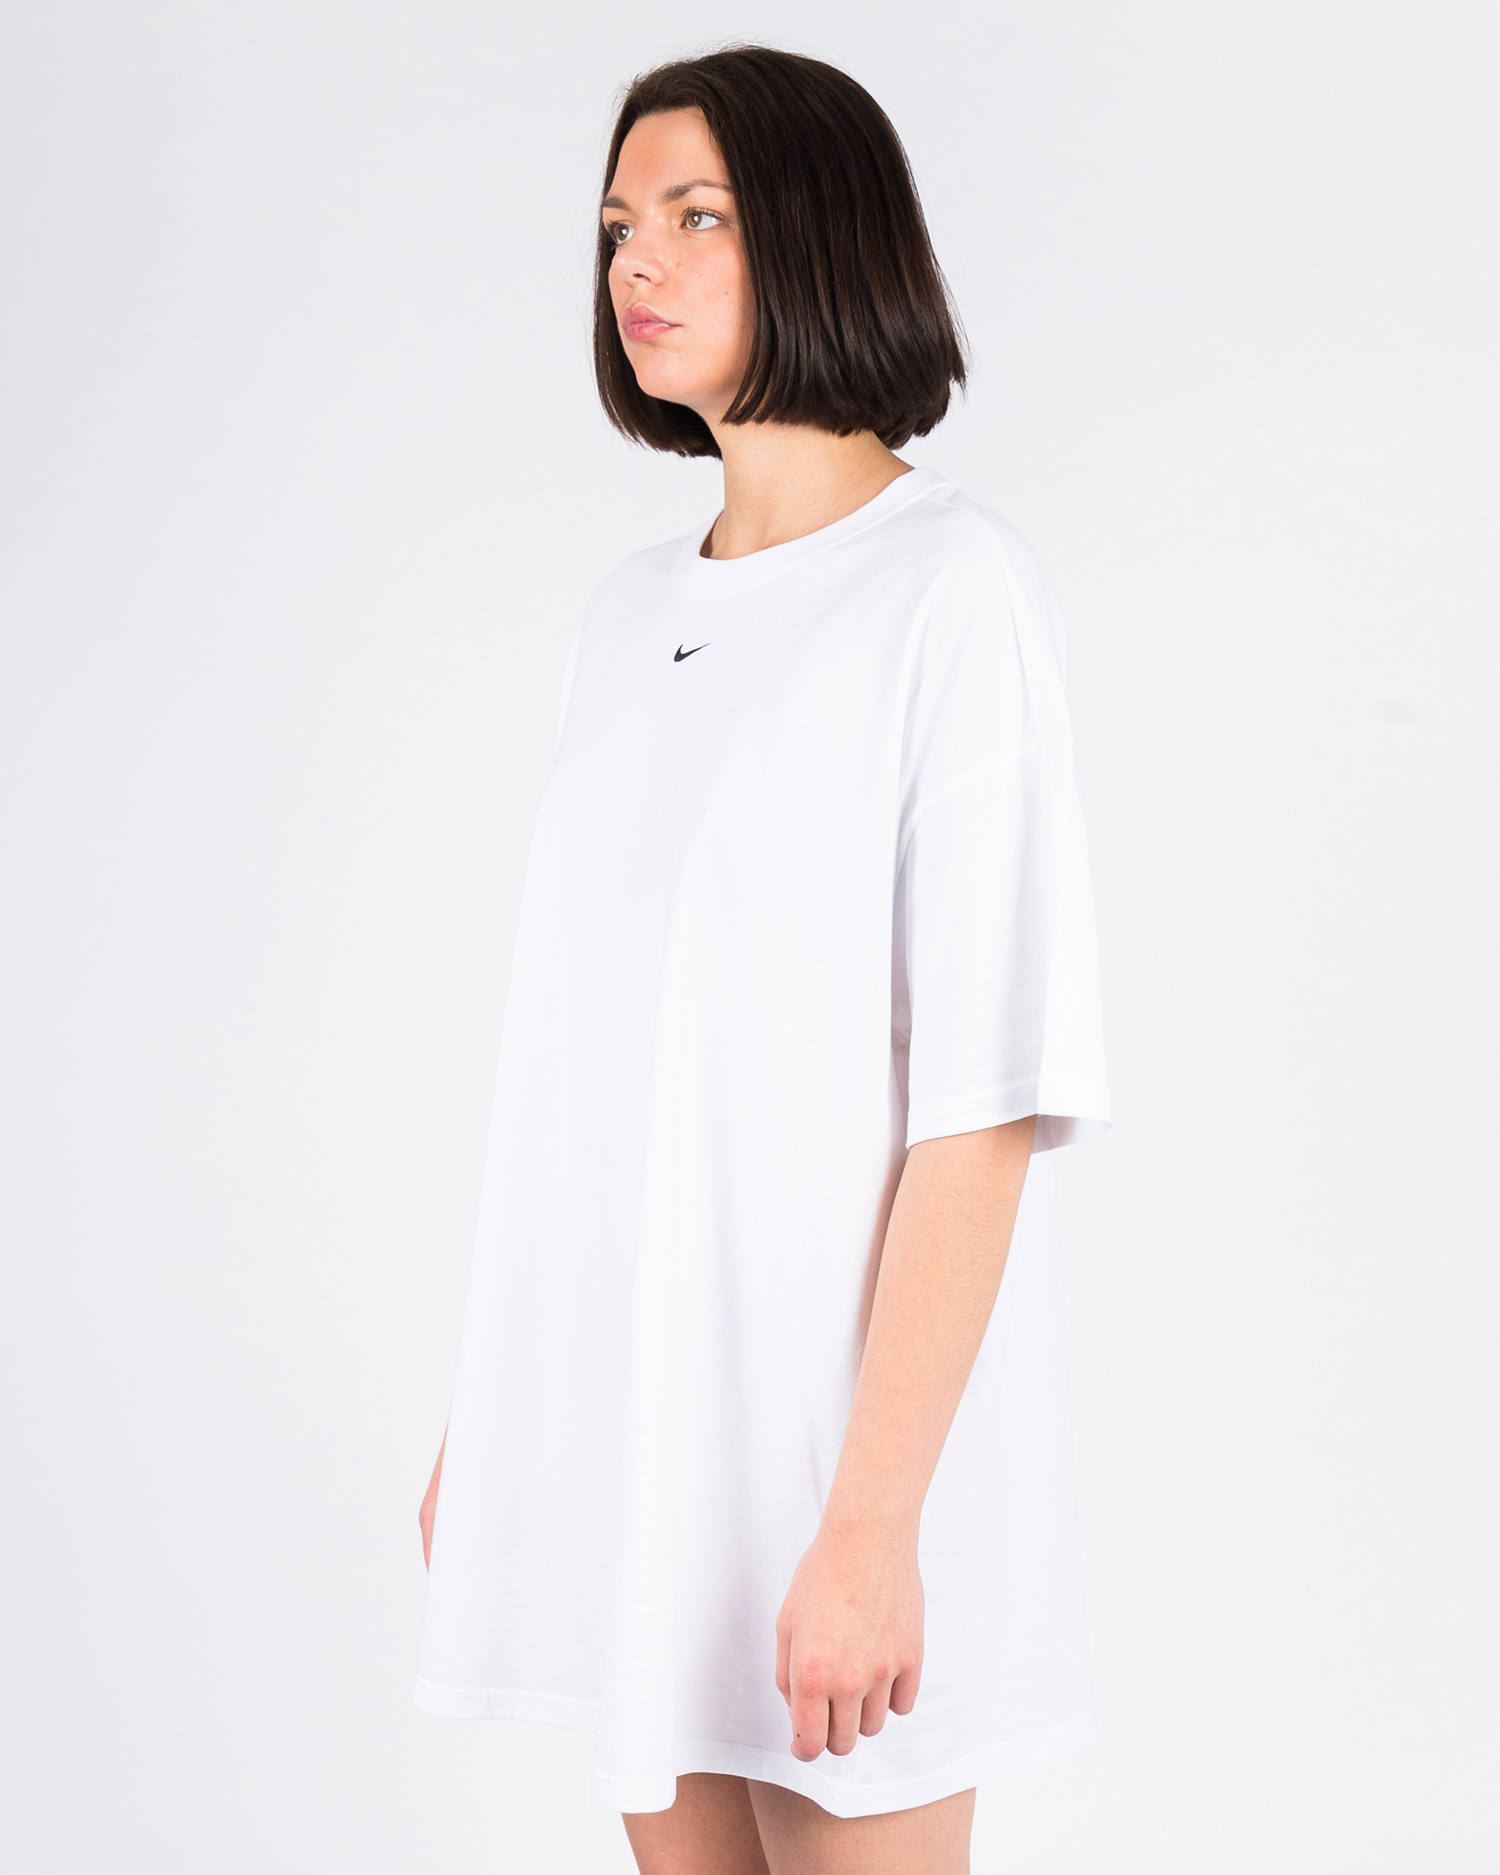 Nike W NSW Essential dress White/Black